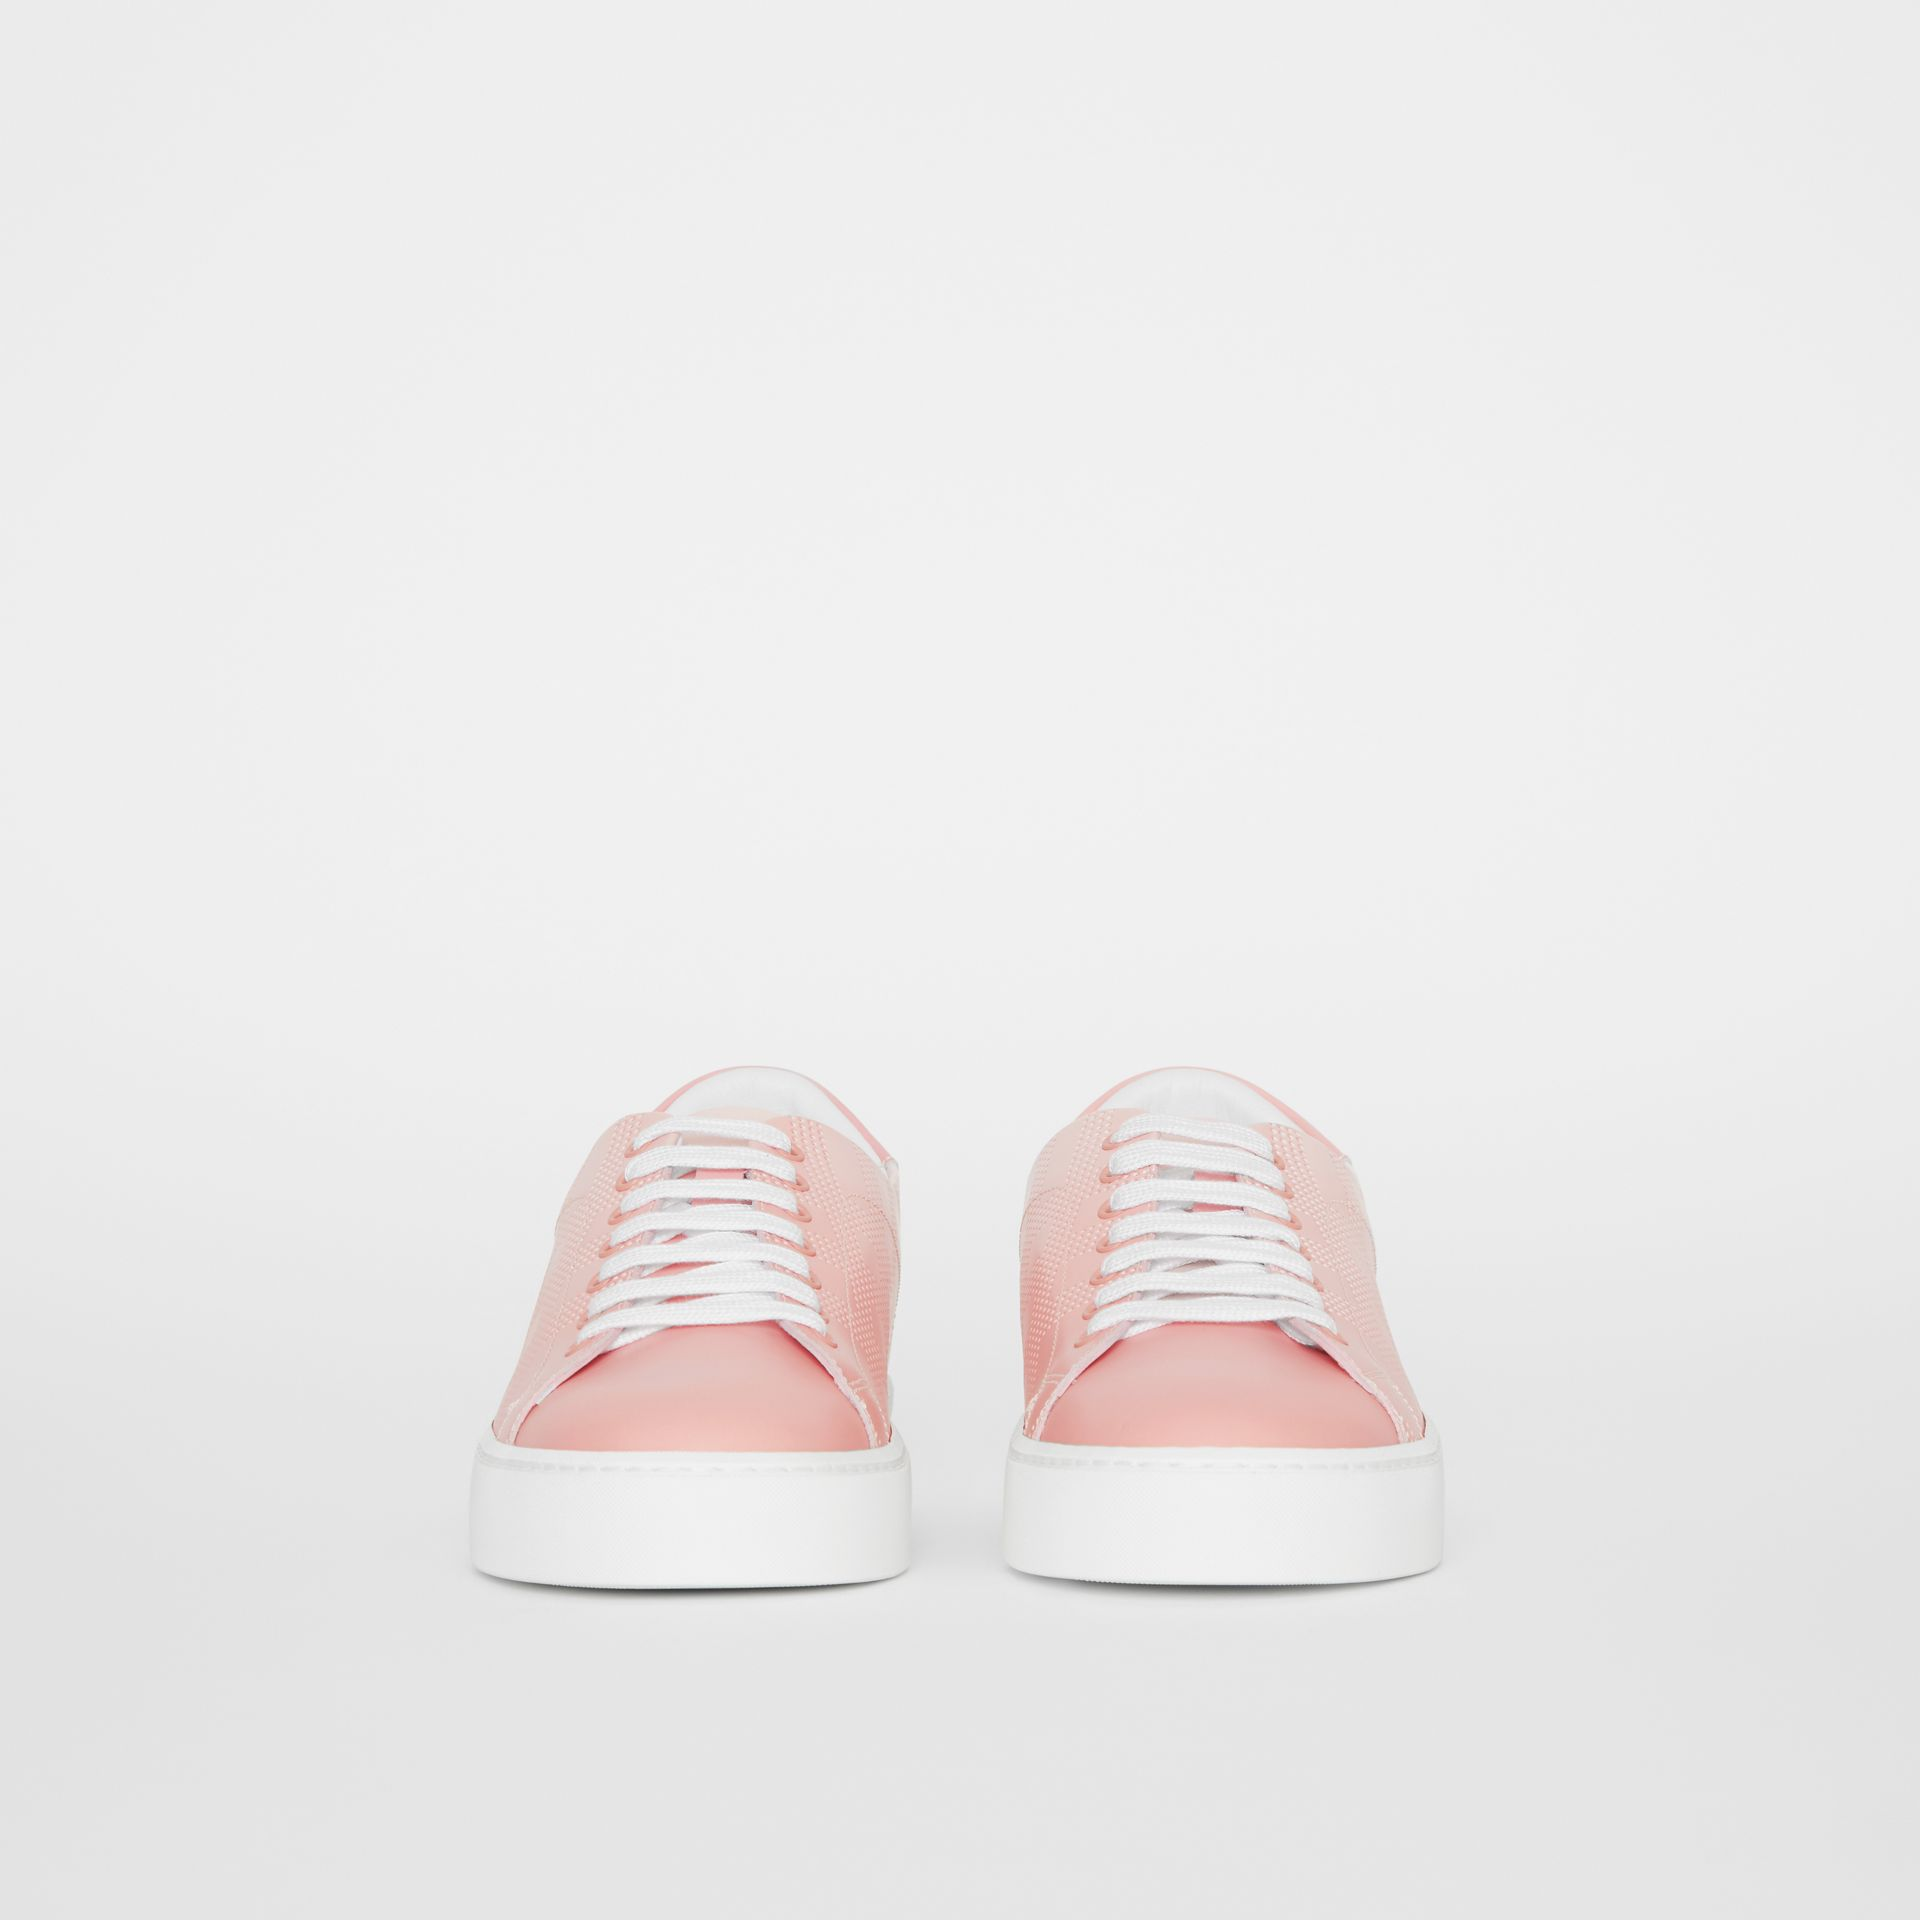 Perforated Check Dégradé Leather Sneakers in Sugar Pink - Women | Burberry United States - gallery image 3